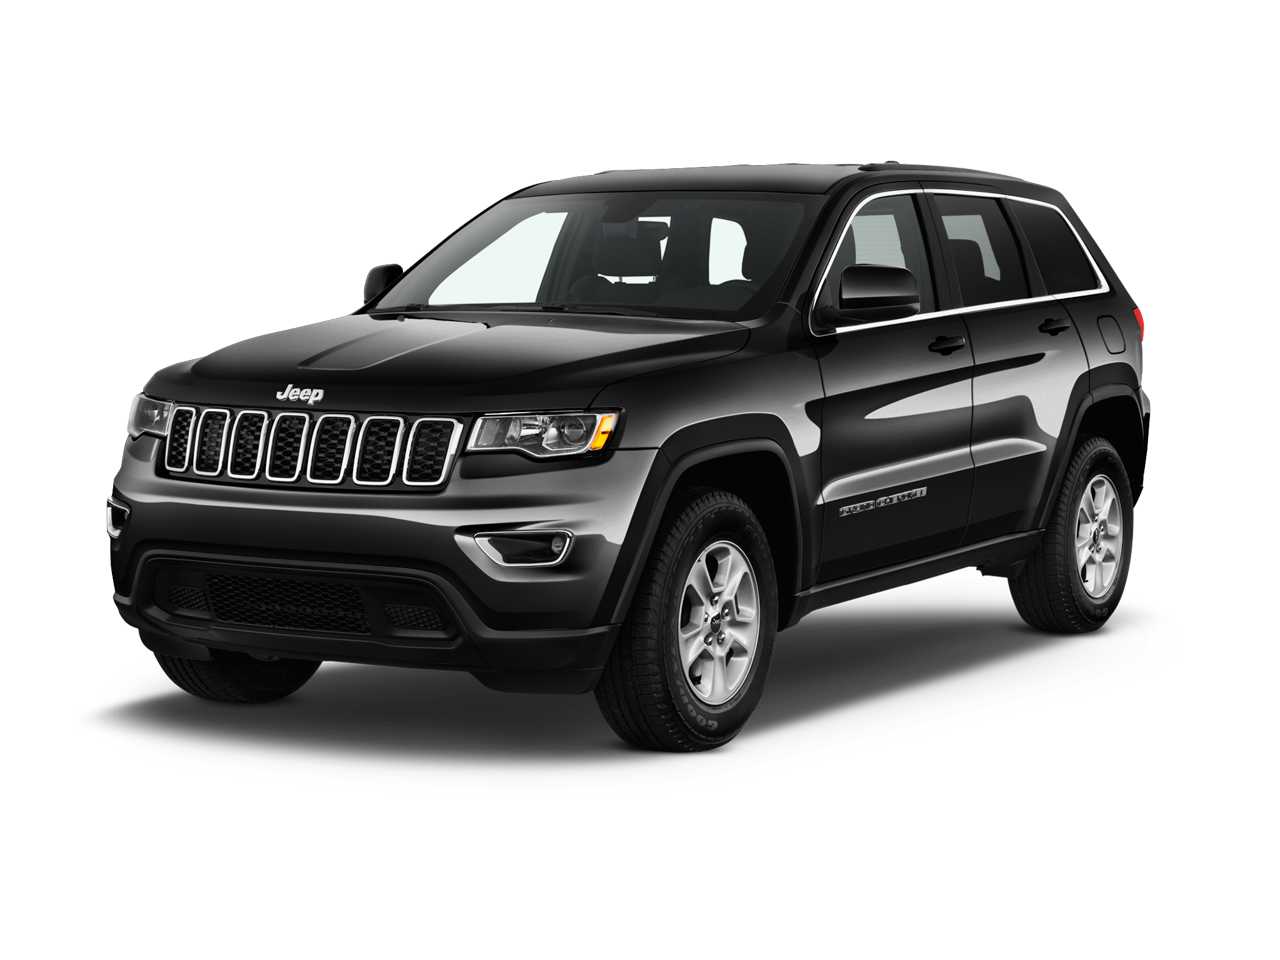 new 2017 jeep grand cherokee laredo near oklahoma city ok david. Black Bedroom Furniture Sets. Home Design Ideas